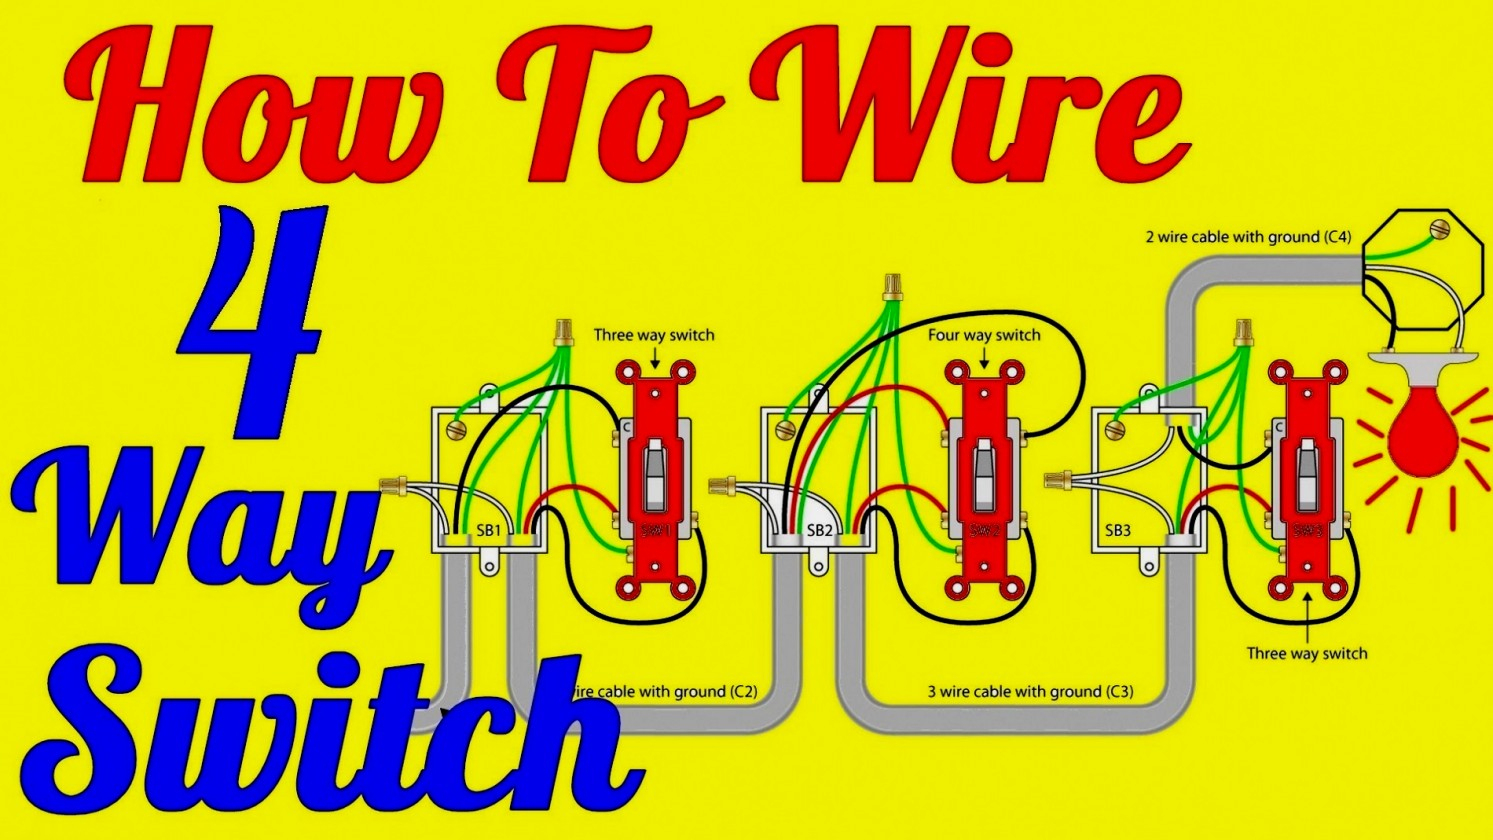 Way Wiring Diagram Multiple Lights on 7 way light wiring diagram, 4 way light wiring scheme, 2 way light wiring diagram, 6 way light wiring diagram, 4 way electrical diagram, 4 way lighting diagram, 3 way light wiring diagram, 4 way light switch diagram,